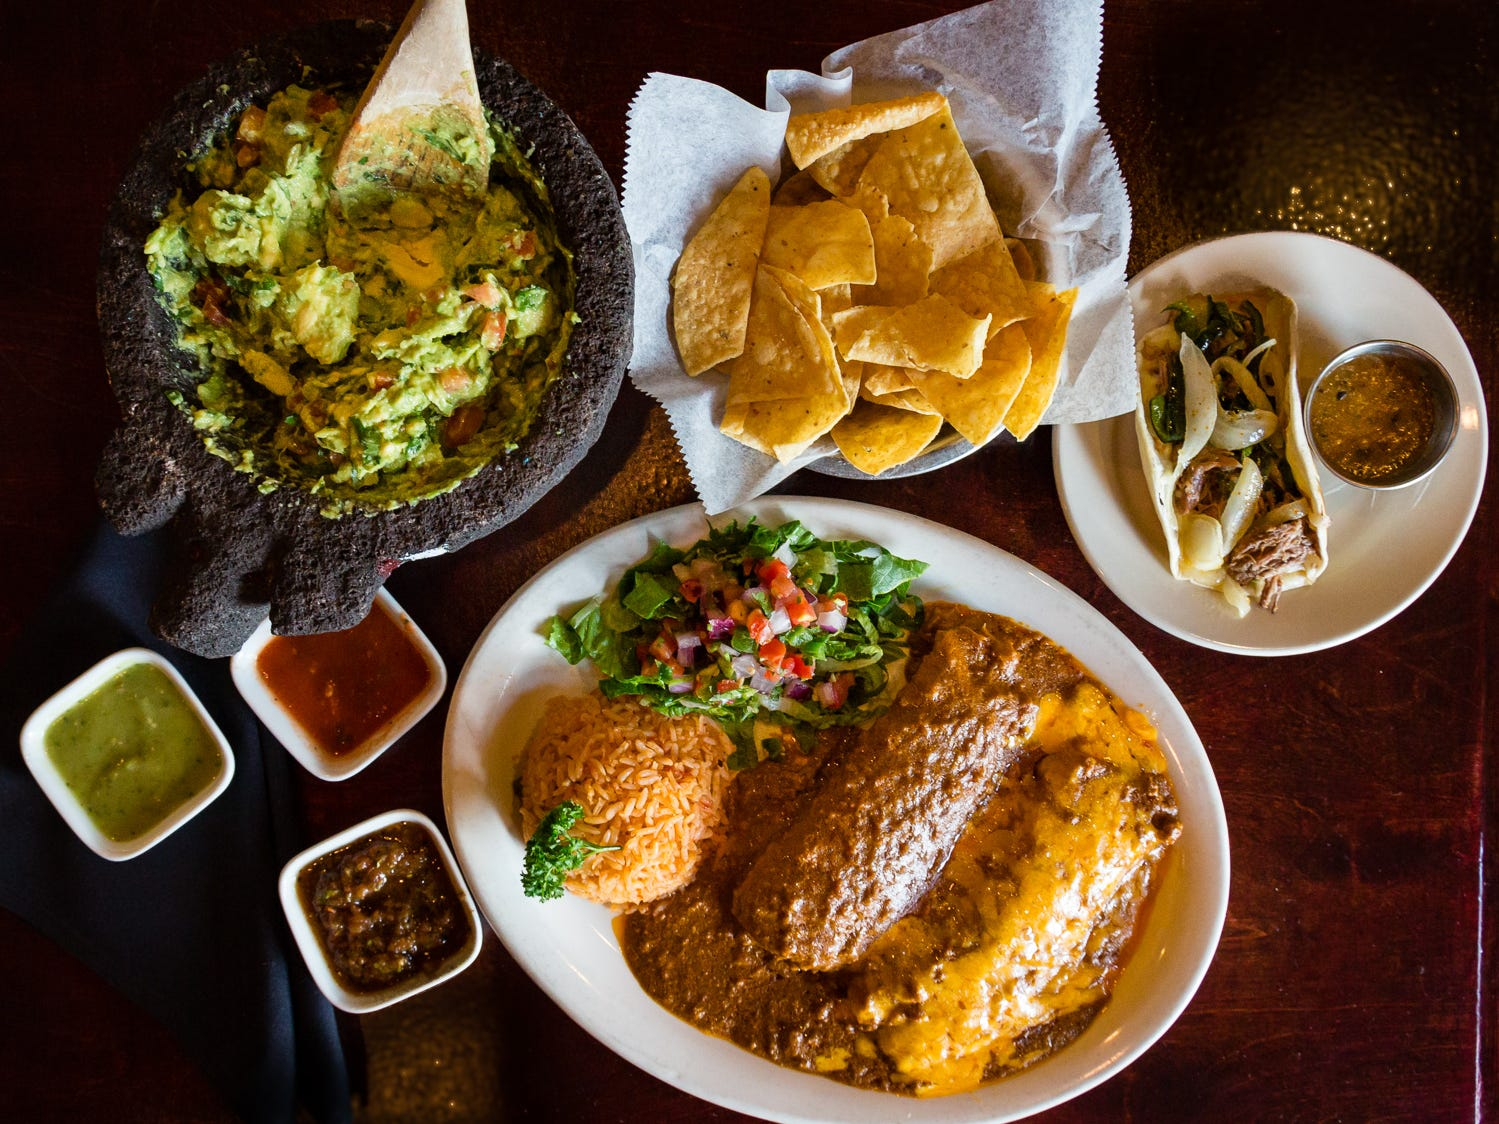 From guacamole made tableside to enchiladas and tamales made from fresh corn masa, chef-owner Gabrielle Pampa's Tex-Mex food is some of the city's best. Gabriela and Sofia Tex-Mex draws a loyal following of regular customers to its two North Dallas and Flower Mound locations.